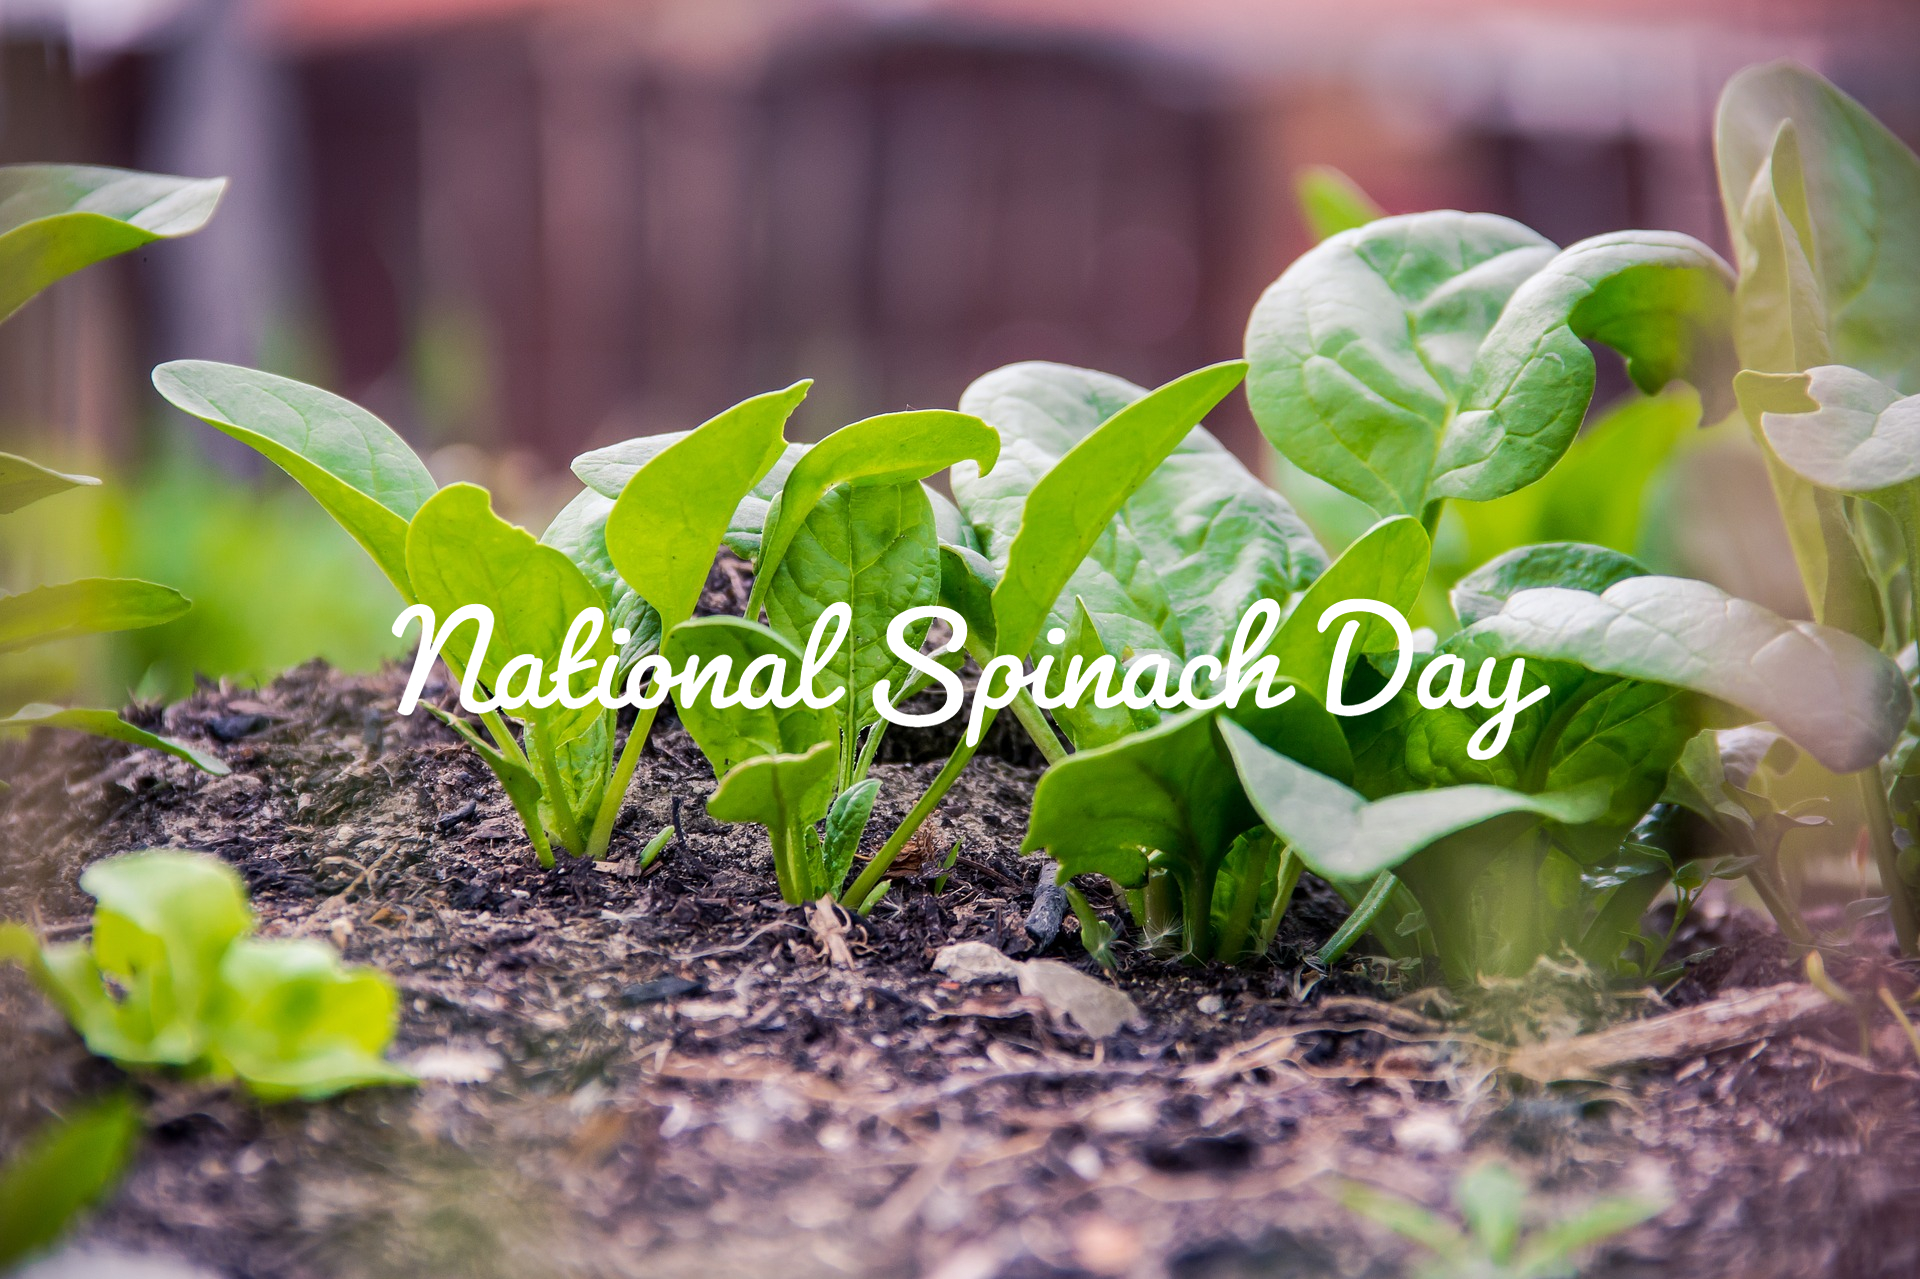 National Spinach Day blog